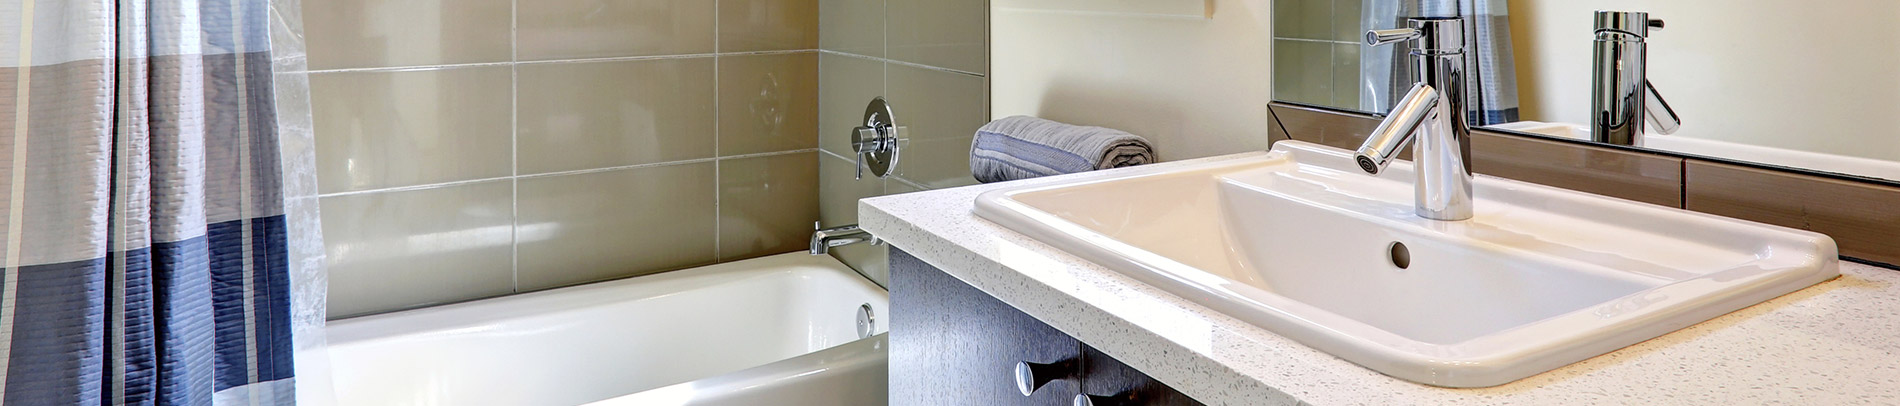 Walk-in Bathtub Manitowoc | Senior Bathroom Remodeling Ideas ...